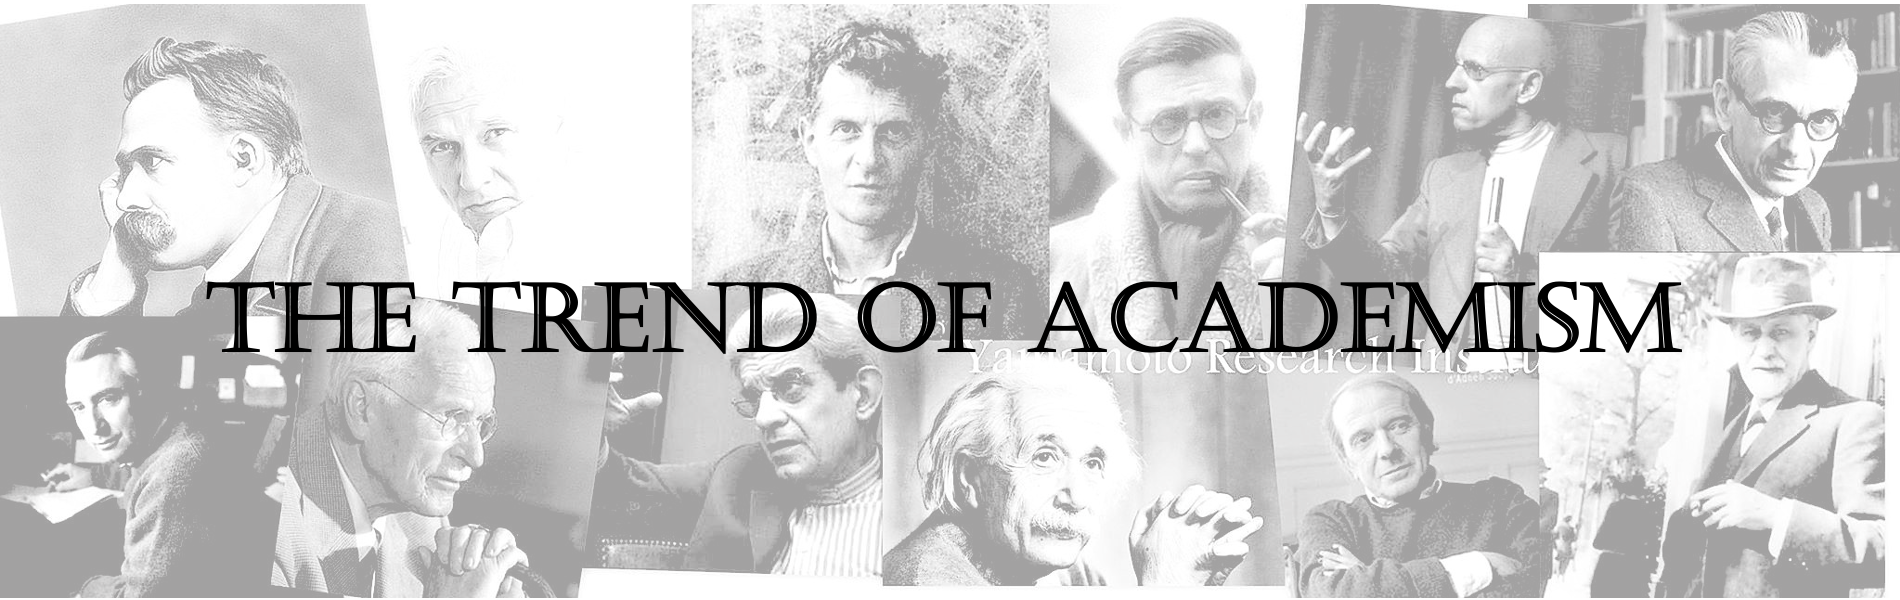 THE TREND OF ACADEMISM